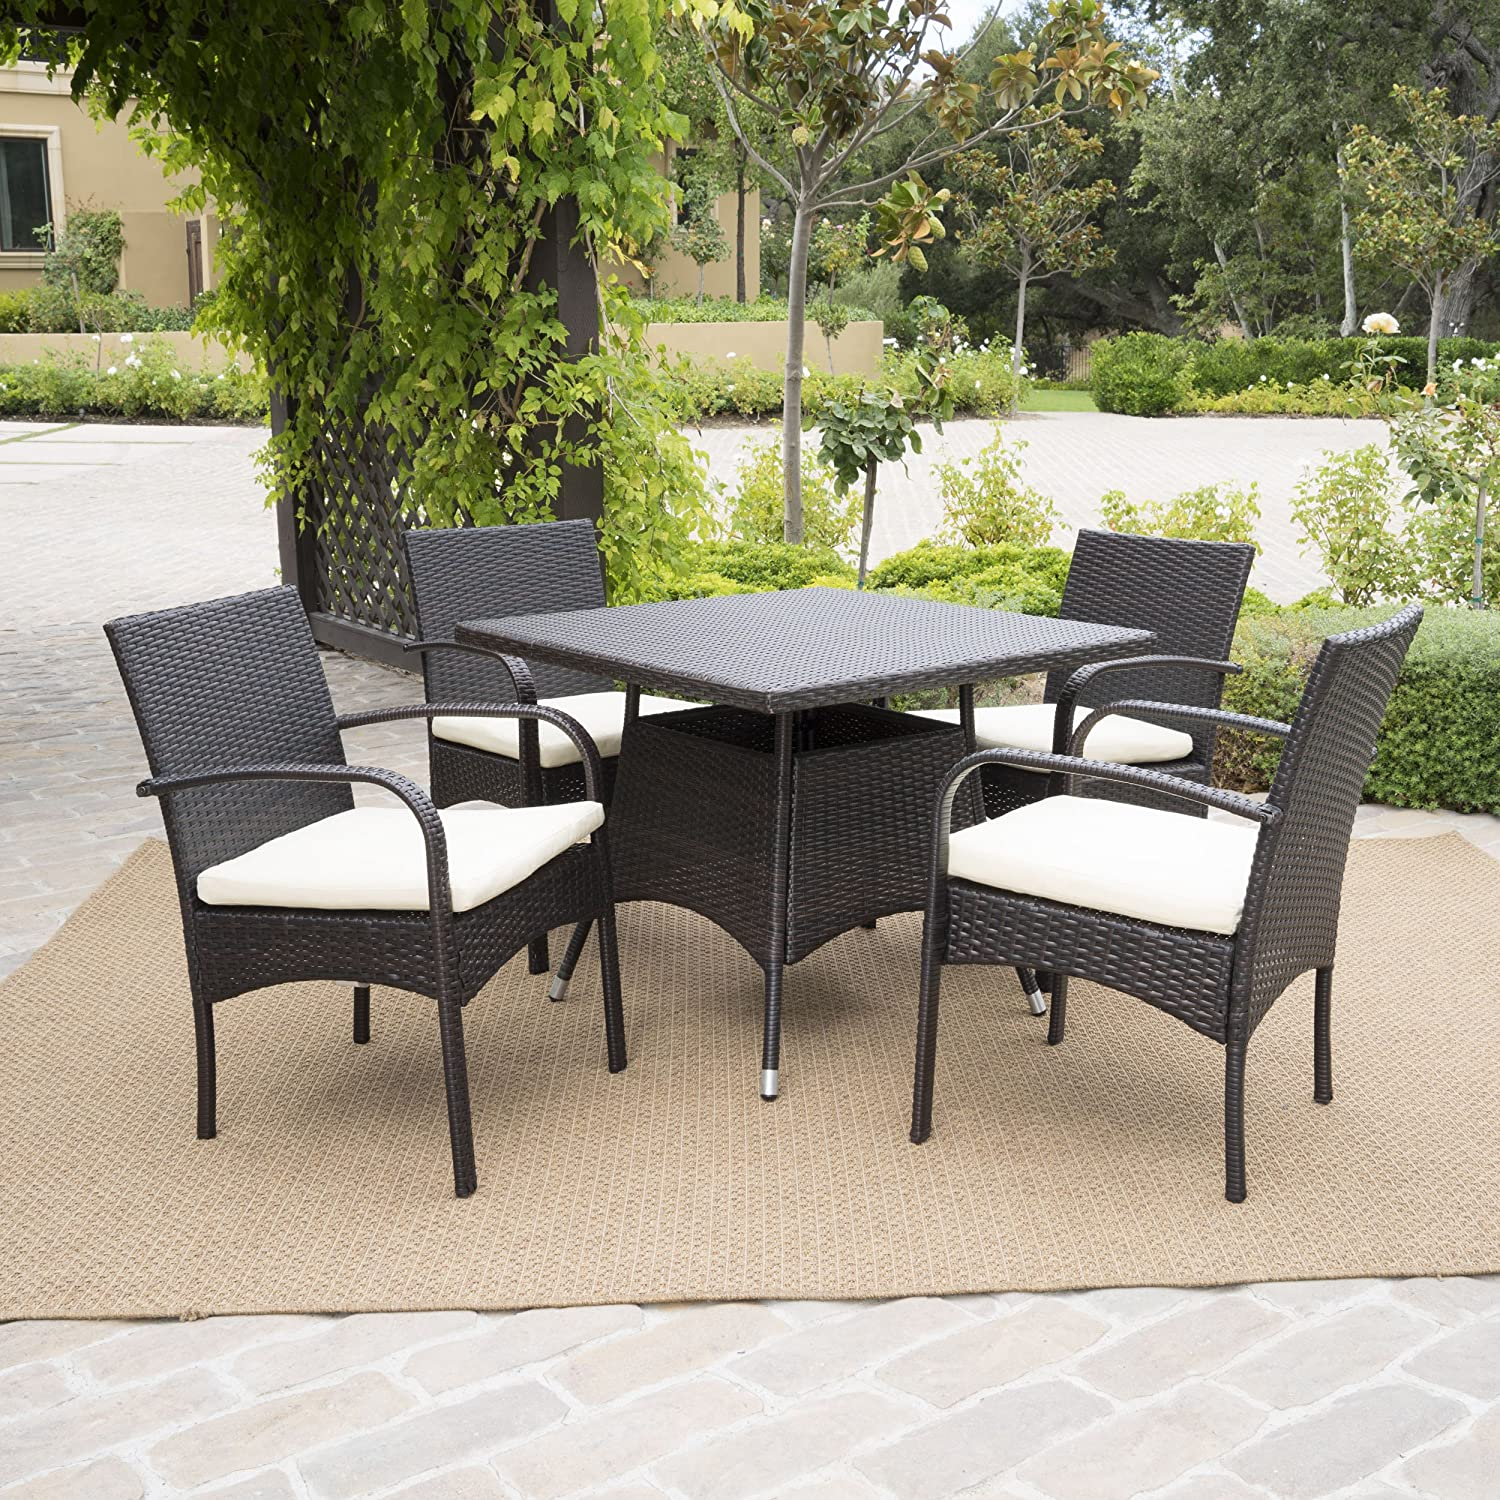 Amazon Carmela 5 Piece Outdoor Patio Furniture Wicker Dining